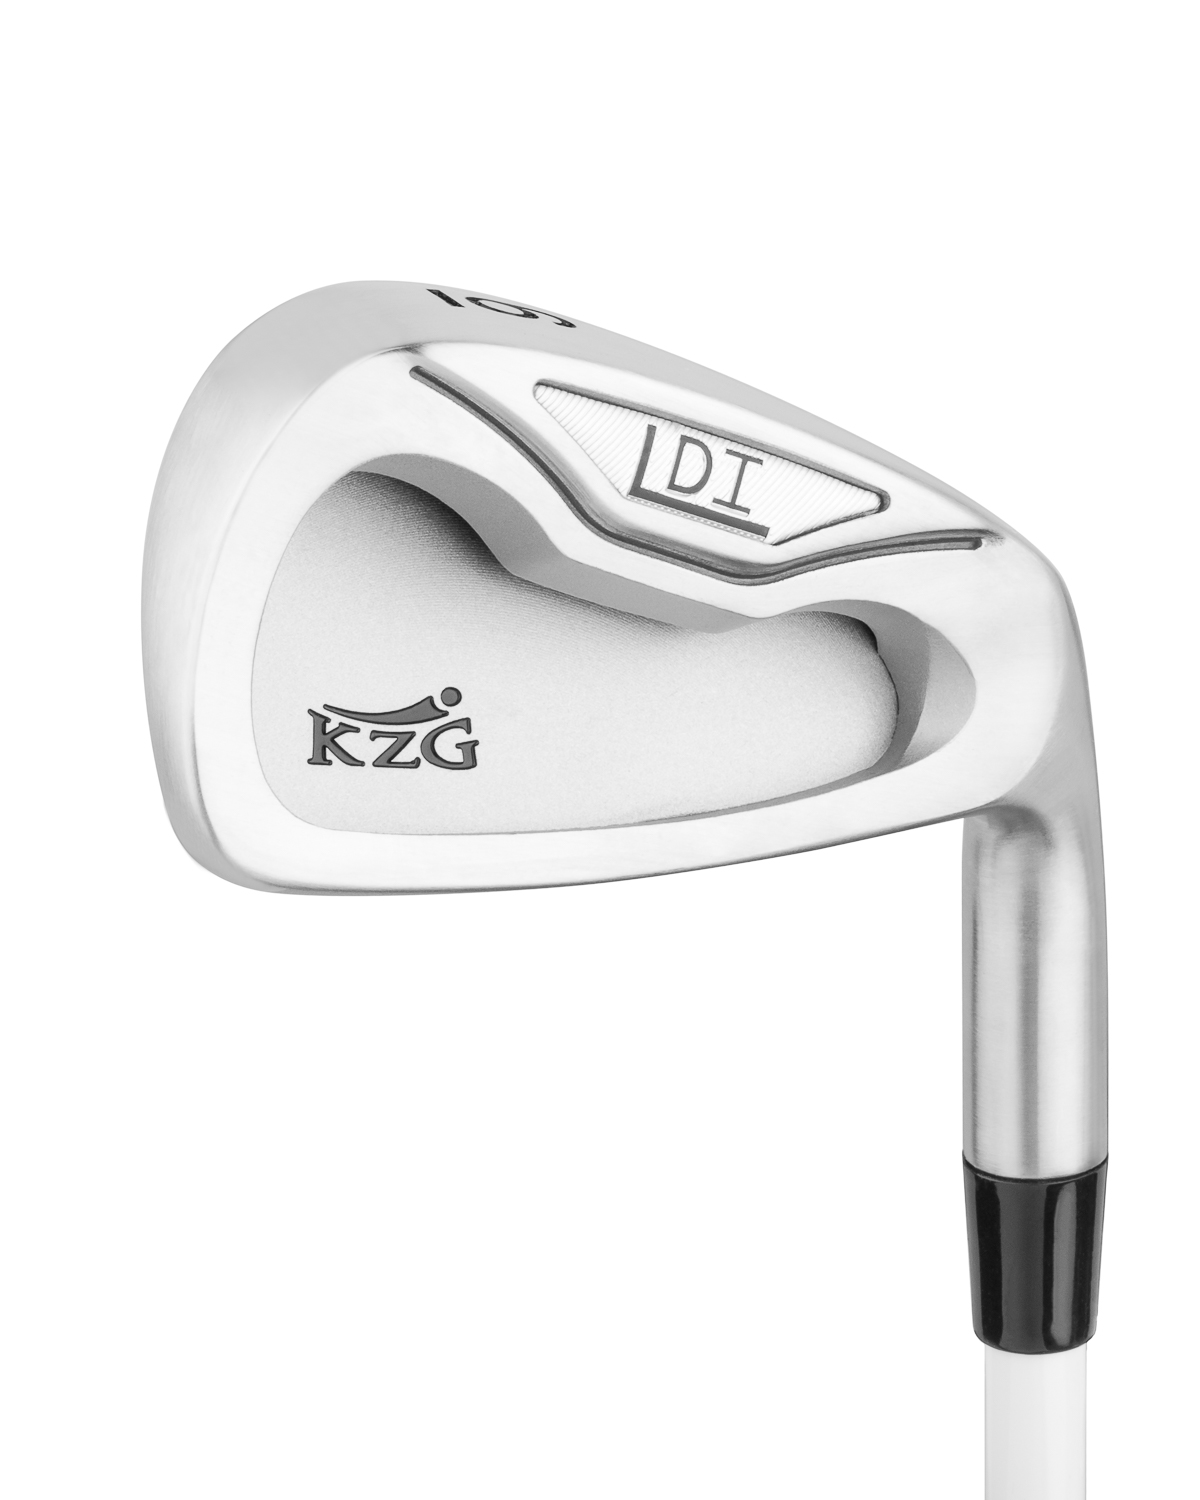 KZG USGA DRIVERS FOR WINDOWS 7